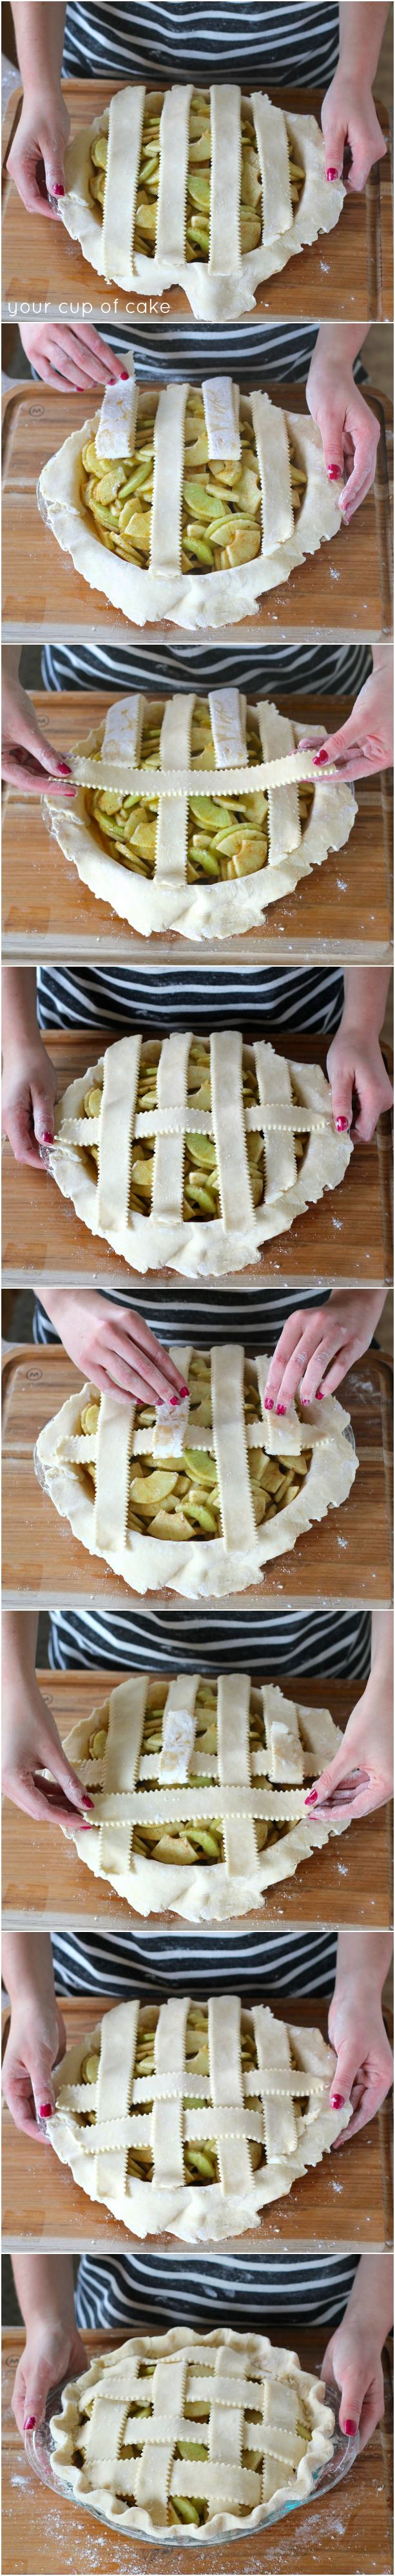 How to lattice a pie